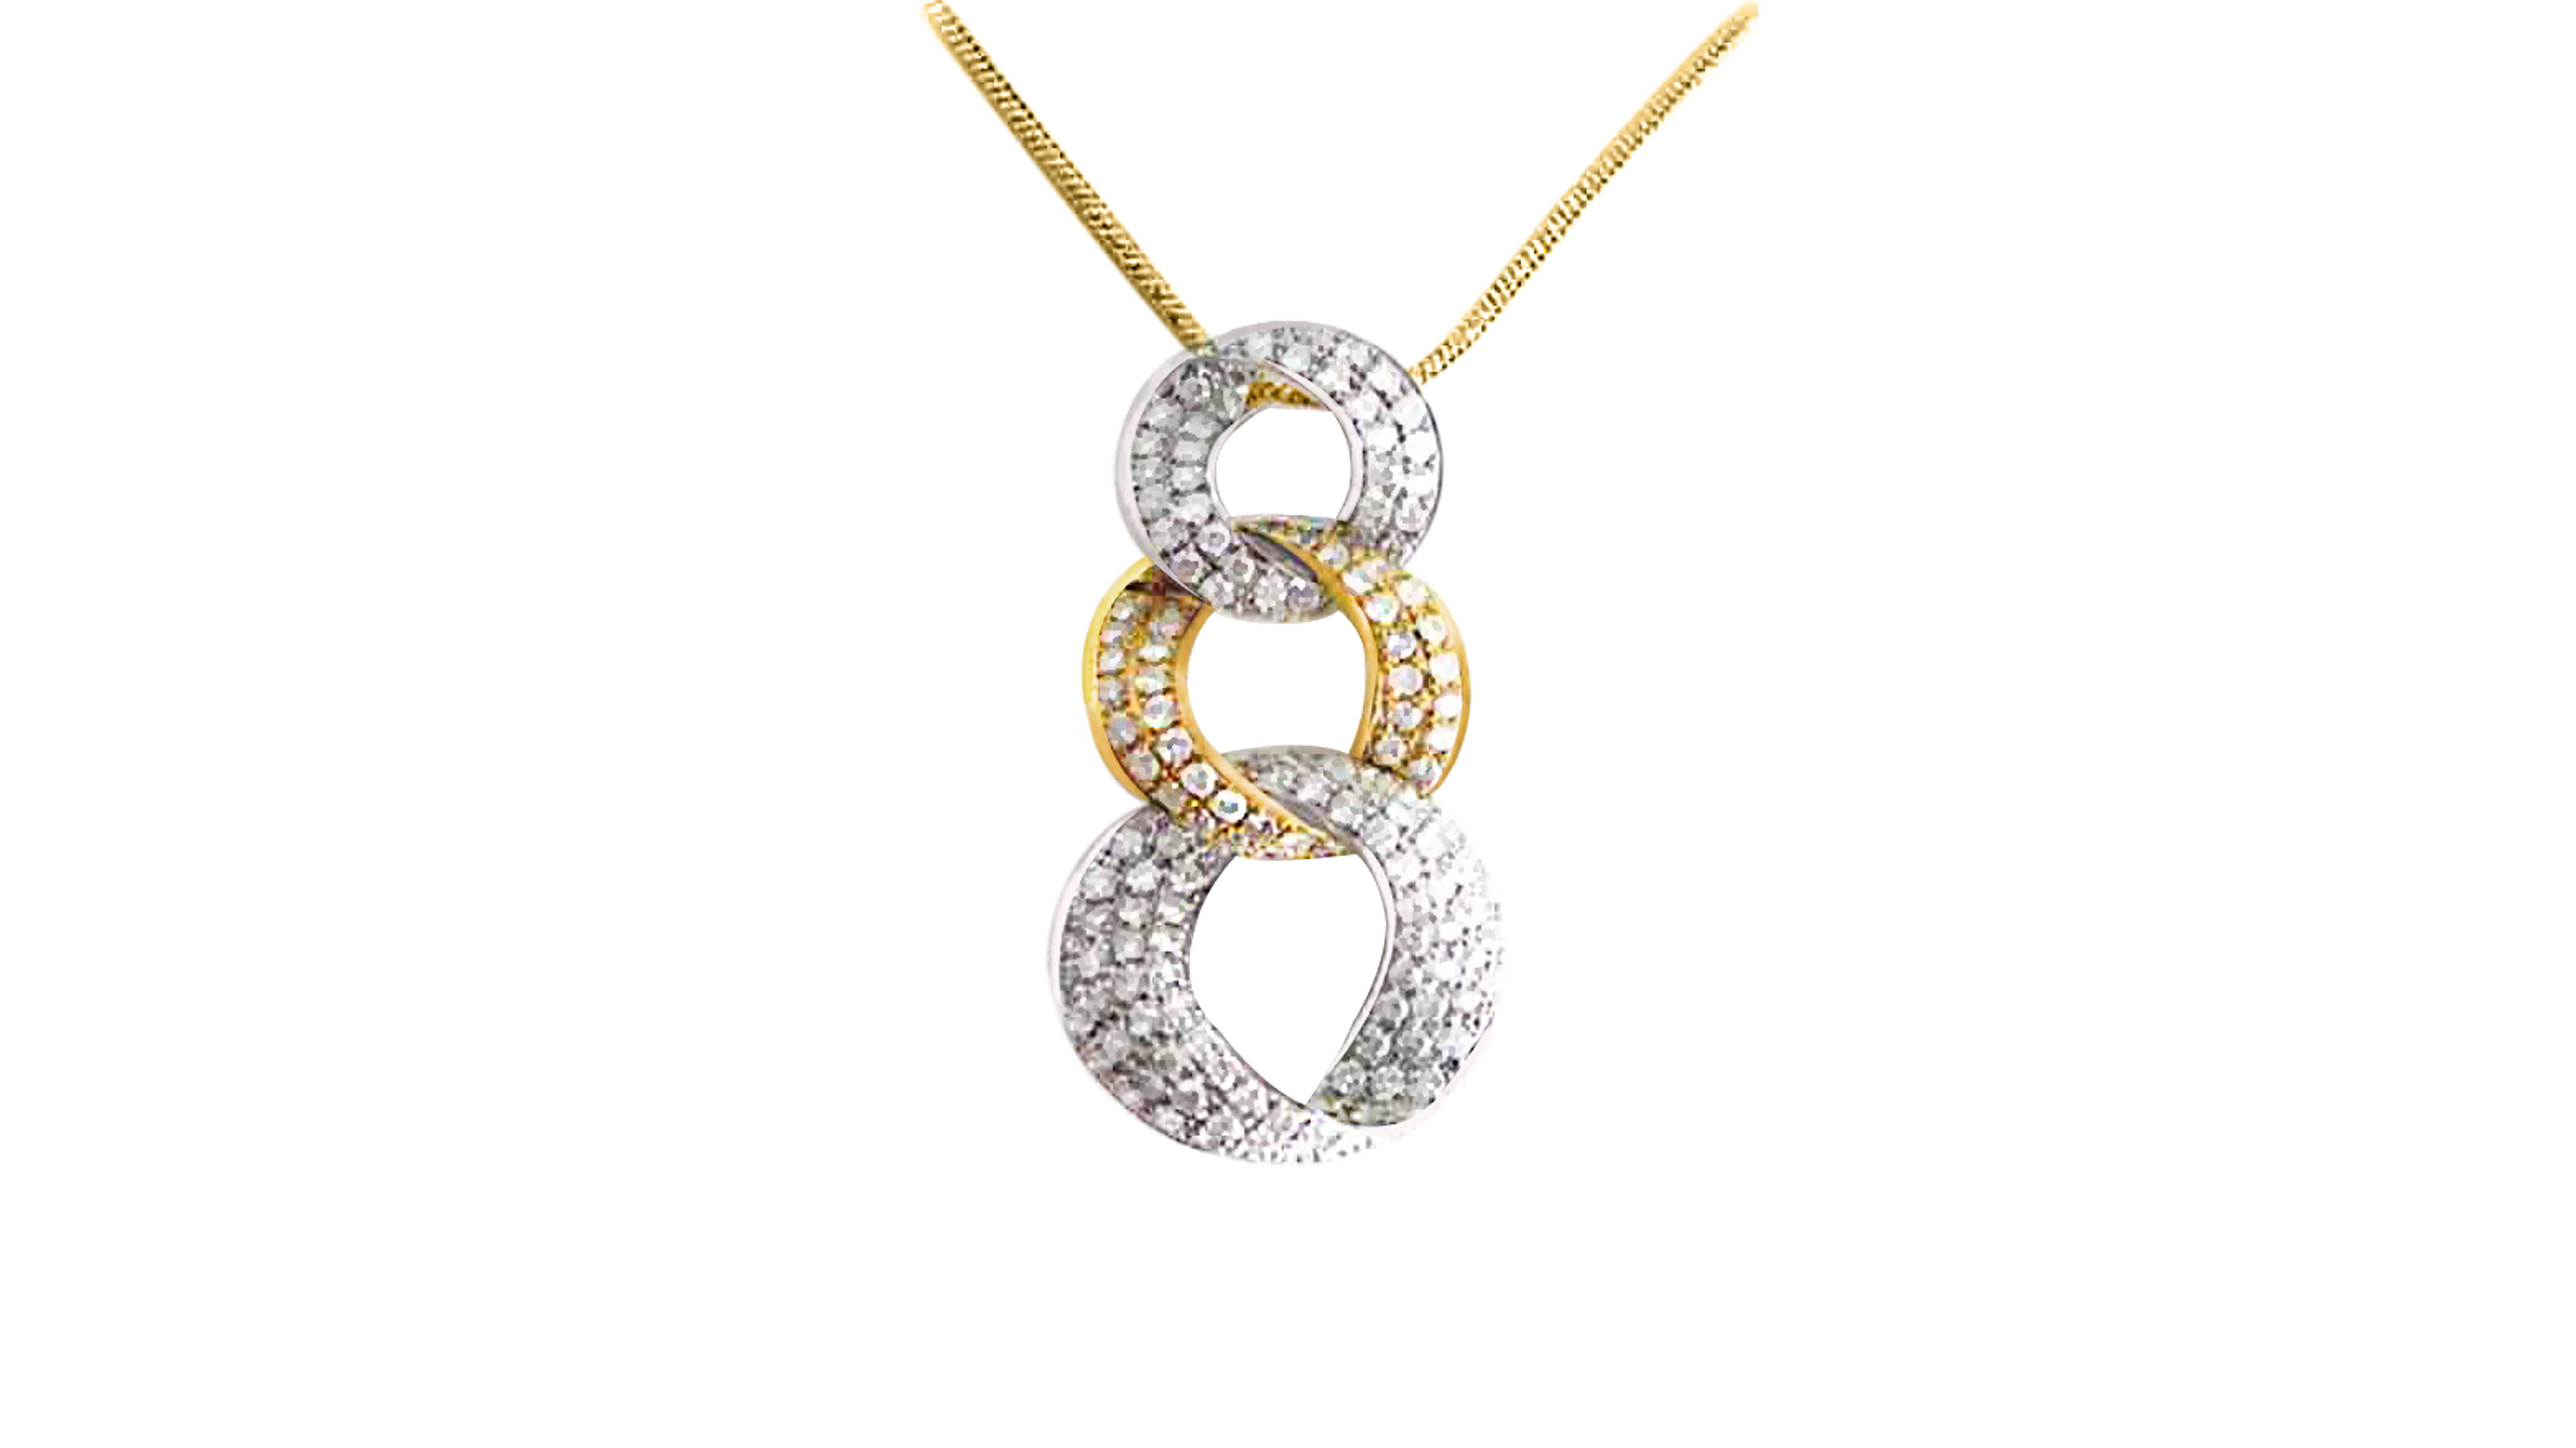 Diamond Two-Tone Fancy Link Pendant | White and yellow gold pendant